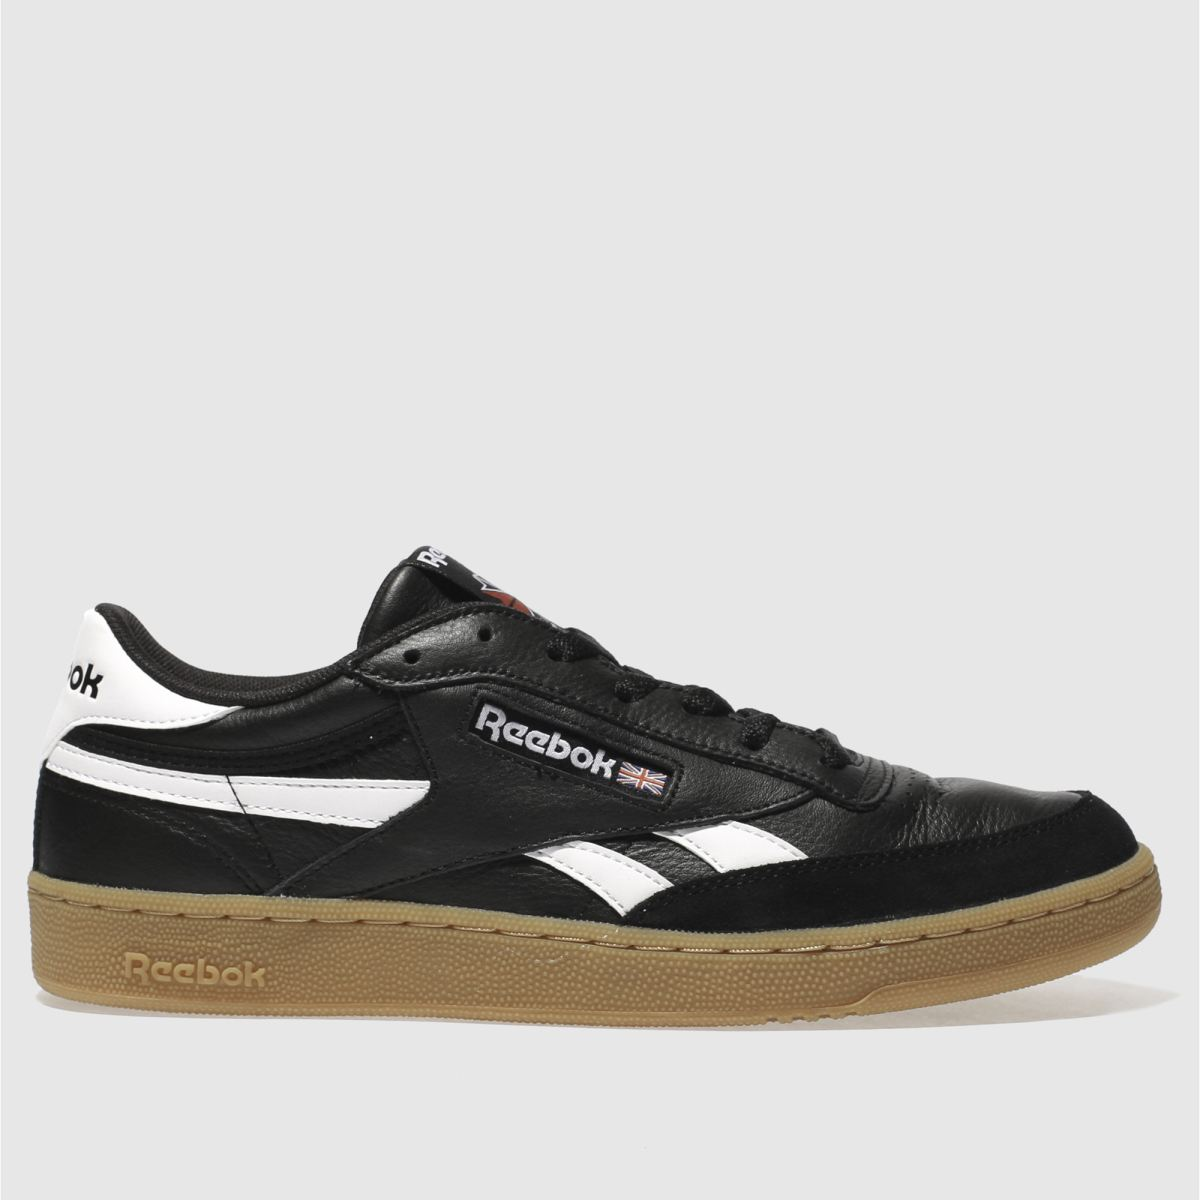 Reebok Black & White Revenge Plus Gum Trainers